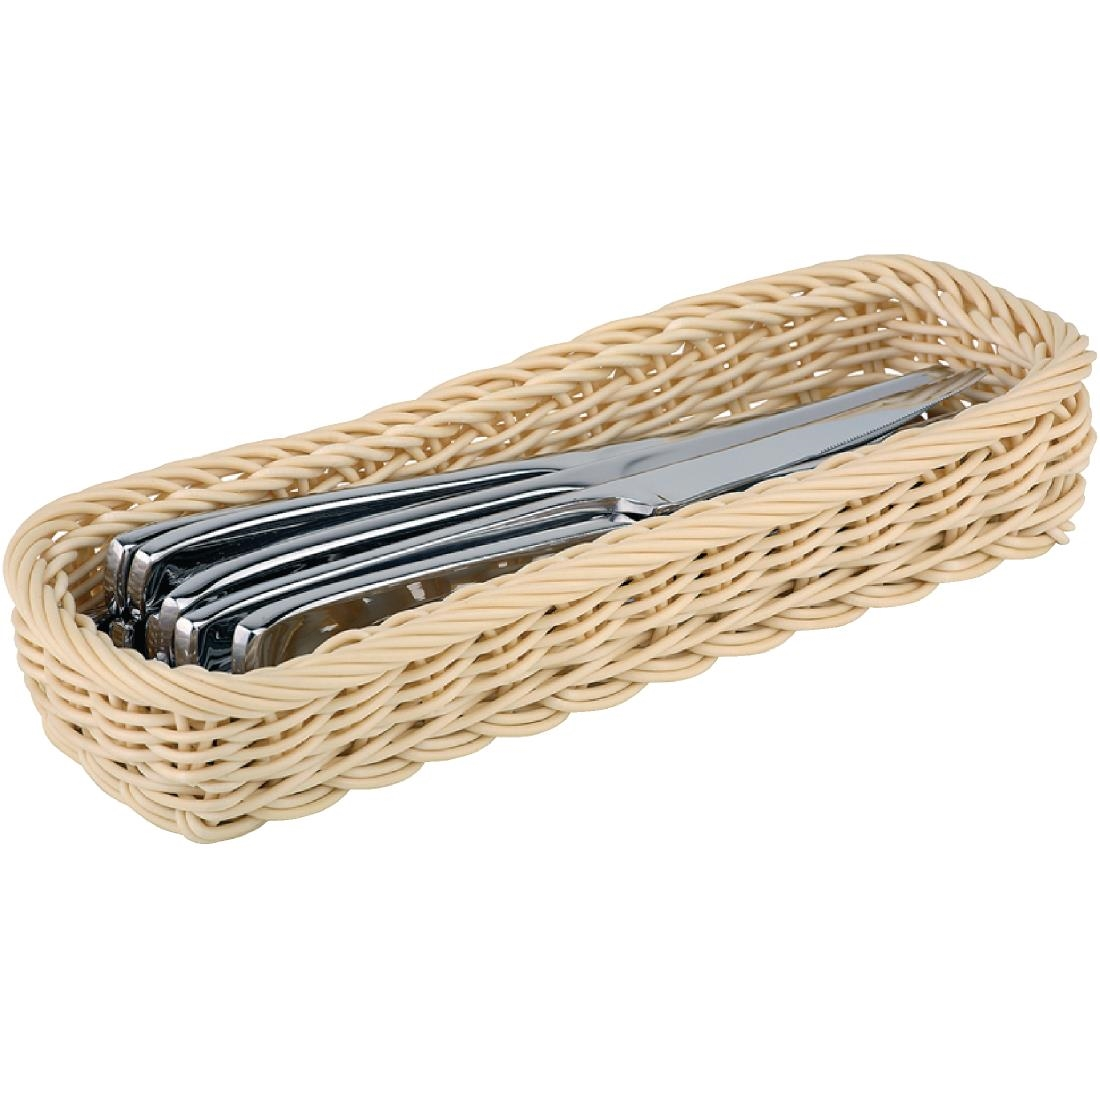 Image of APS Polypropylene Rectangular Rattan Basket